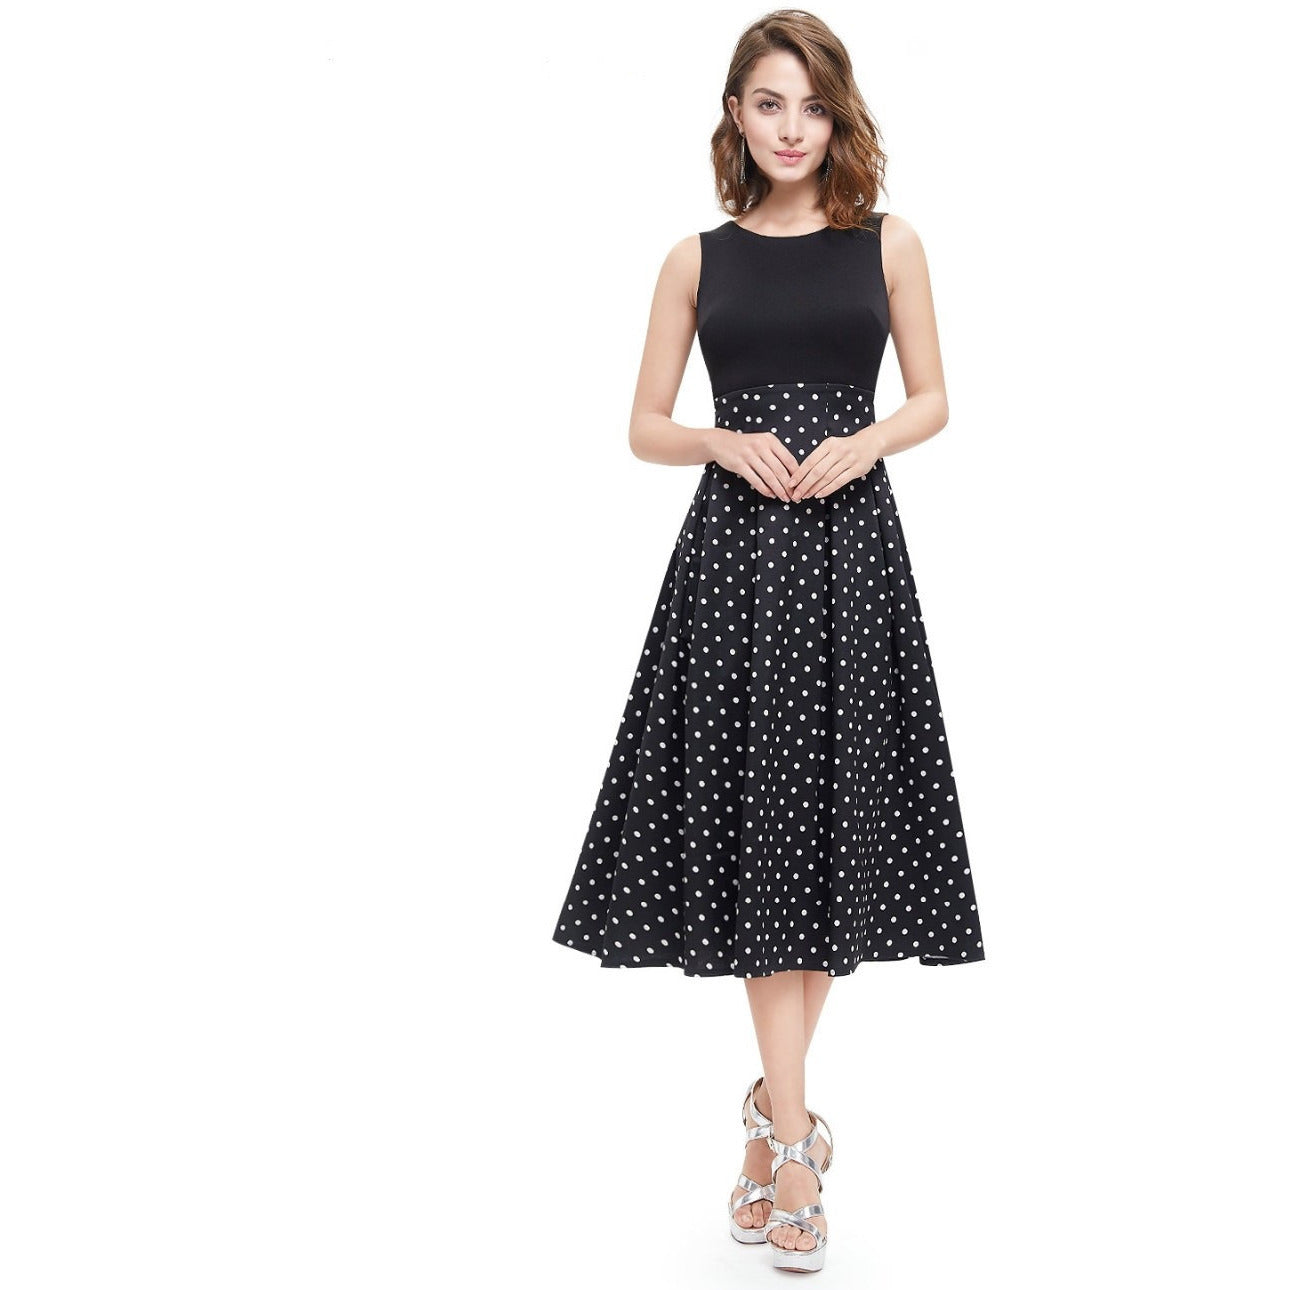 Women's A-Line Sleeveless Party Dress - Indifashion.org